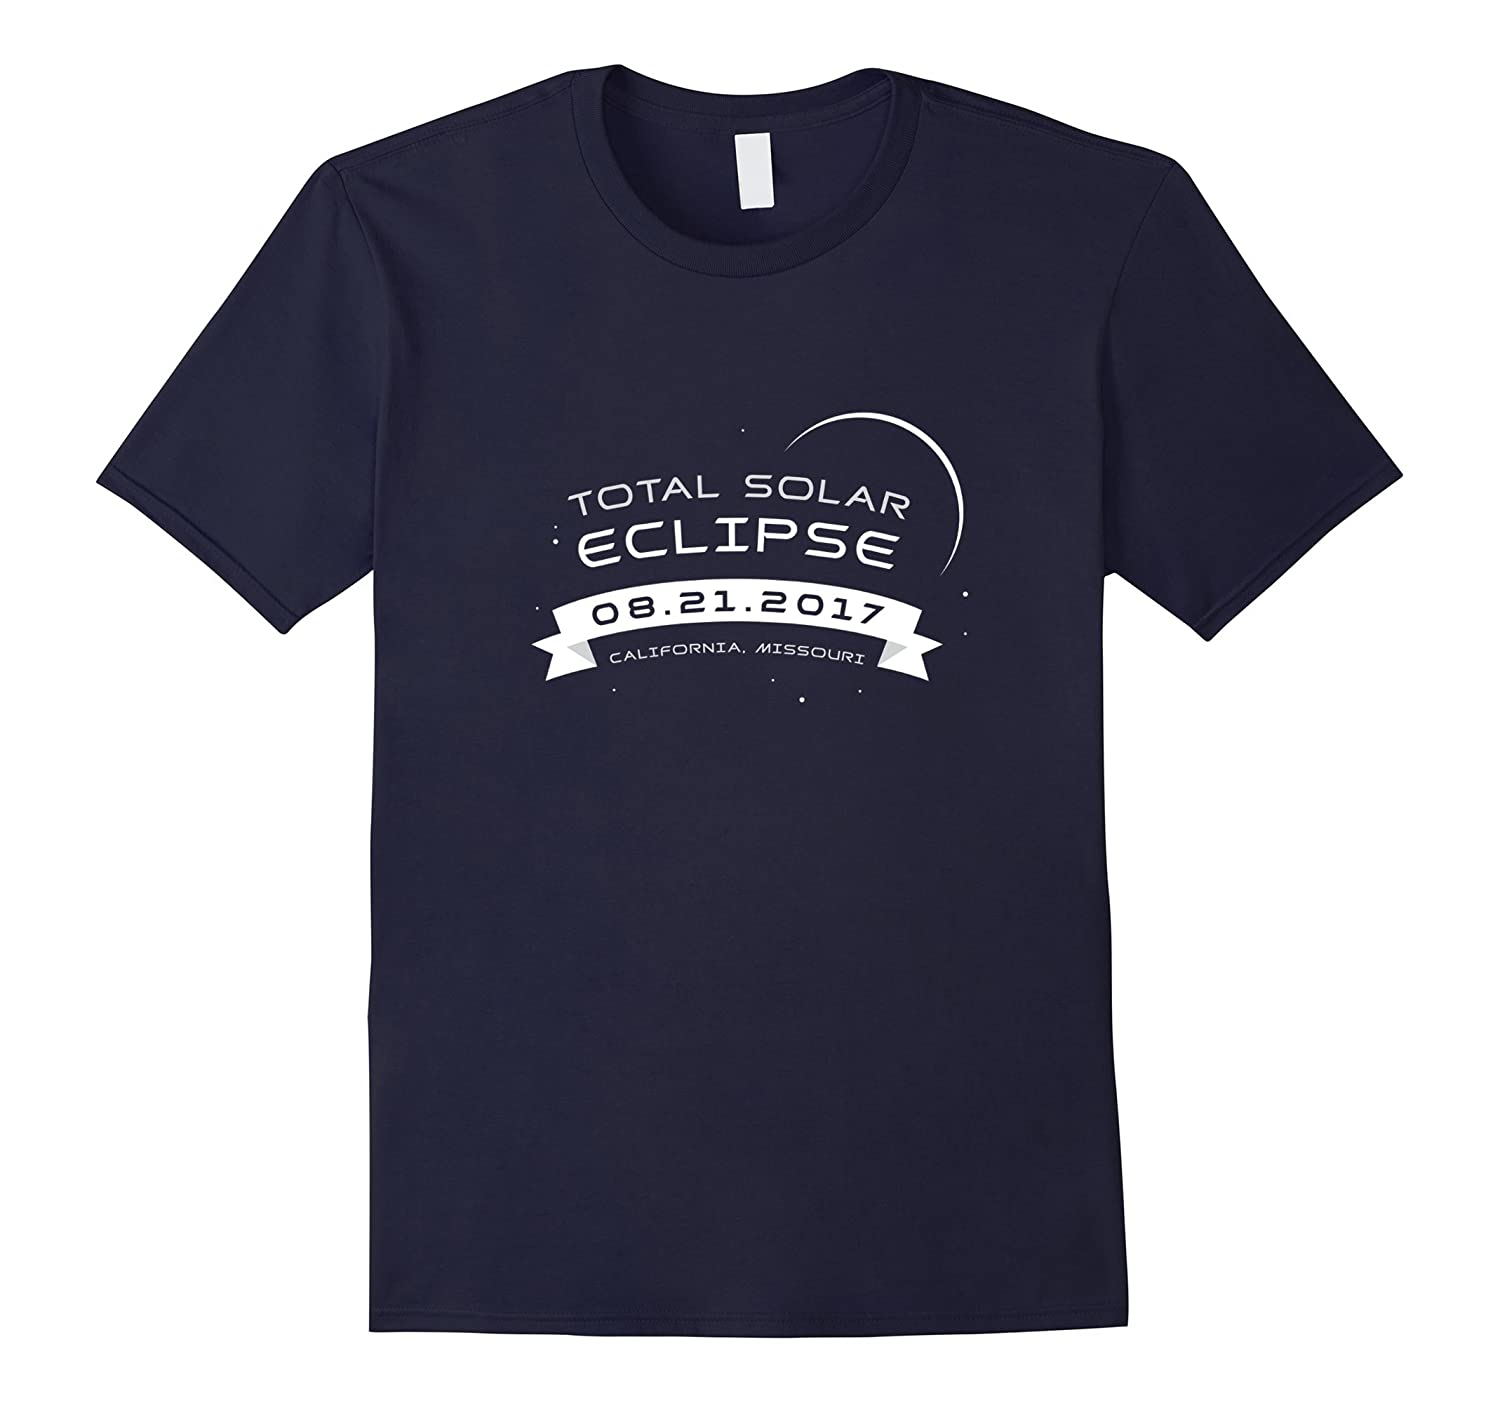 Total Solar Eclipse 2017 Shirt California, Missouri Souvenir-TH